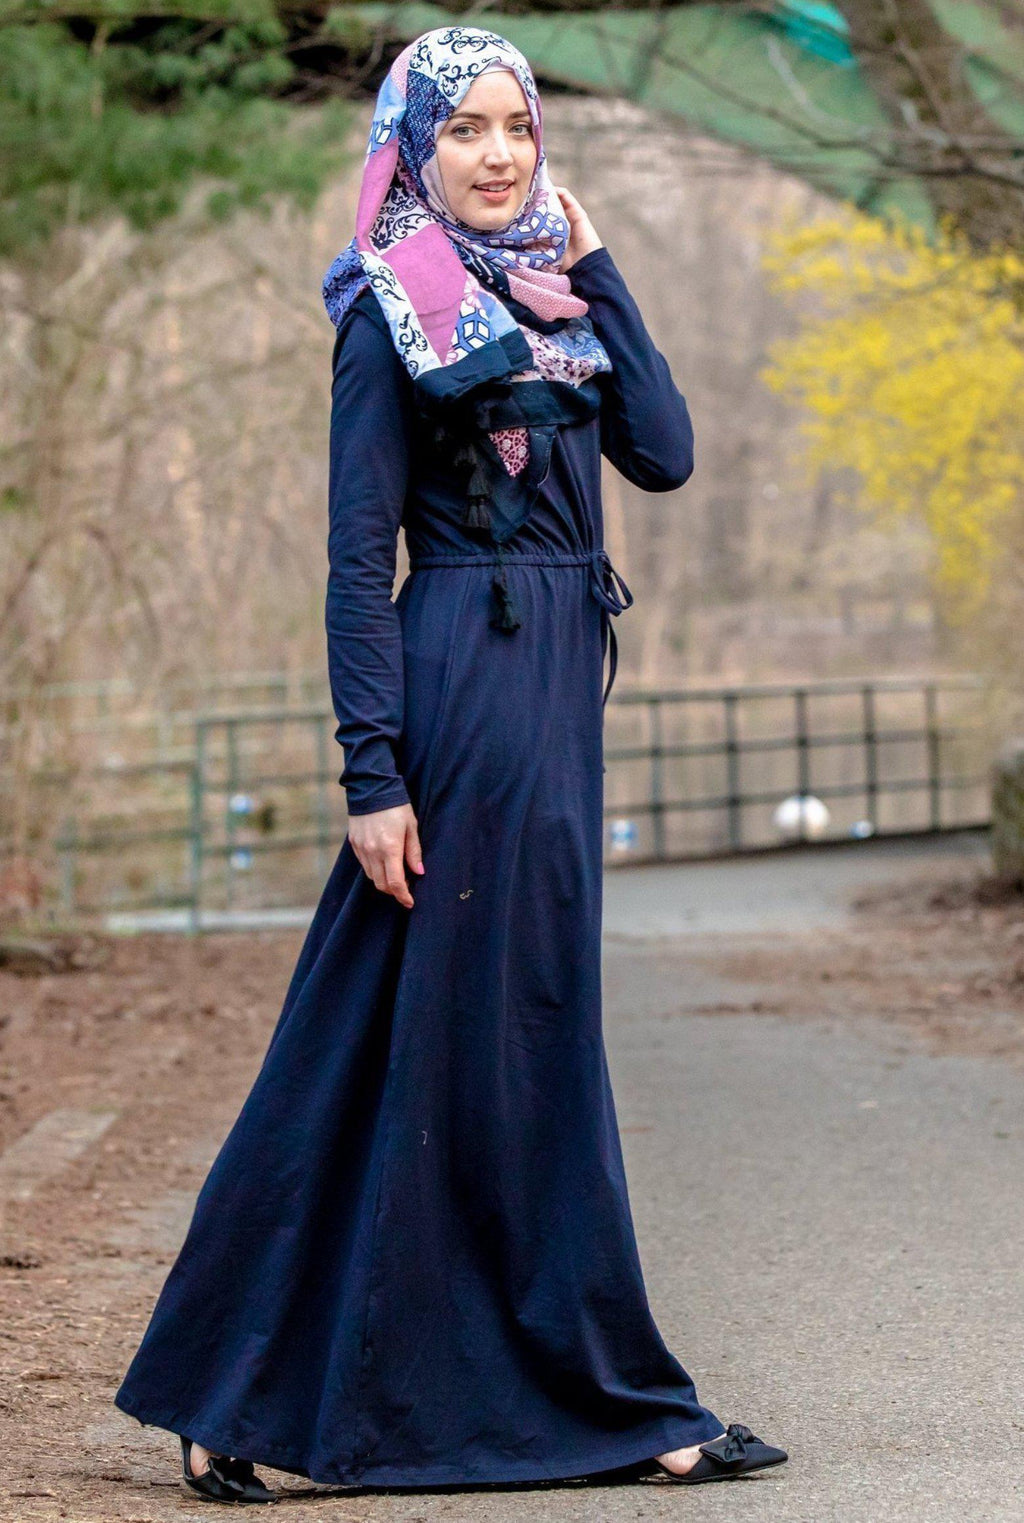 Navy Blue Drawstring Cotton Long Sleeve Maxi Dress-PREORDER - Abaya, Hijabs, Jilbabs, on sale now at UrbanModesty.com